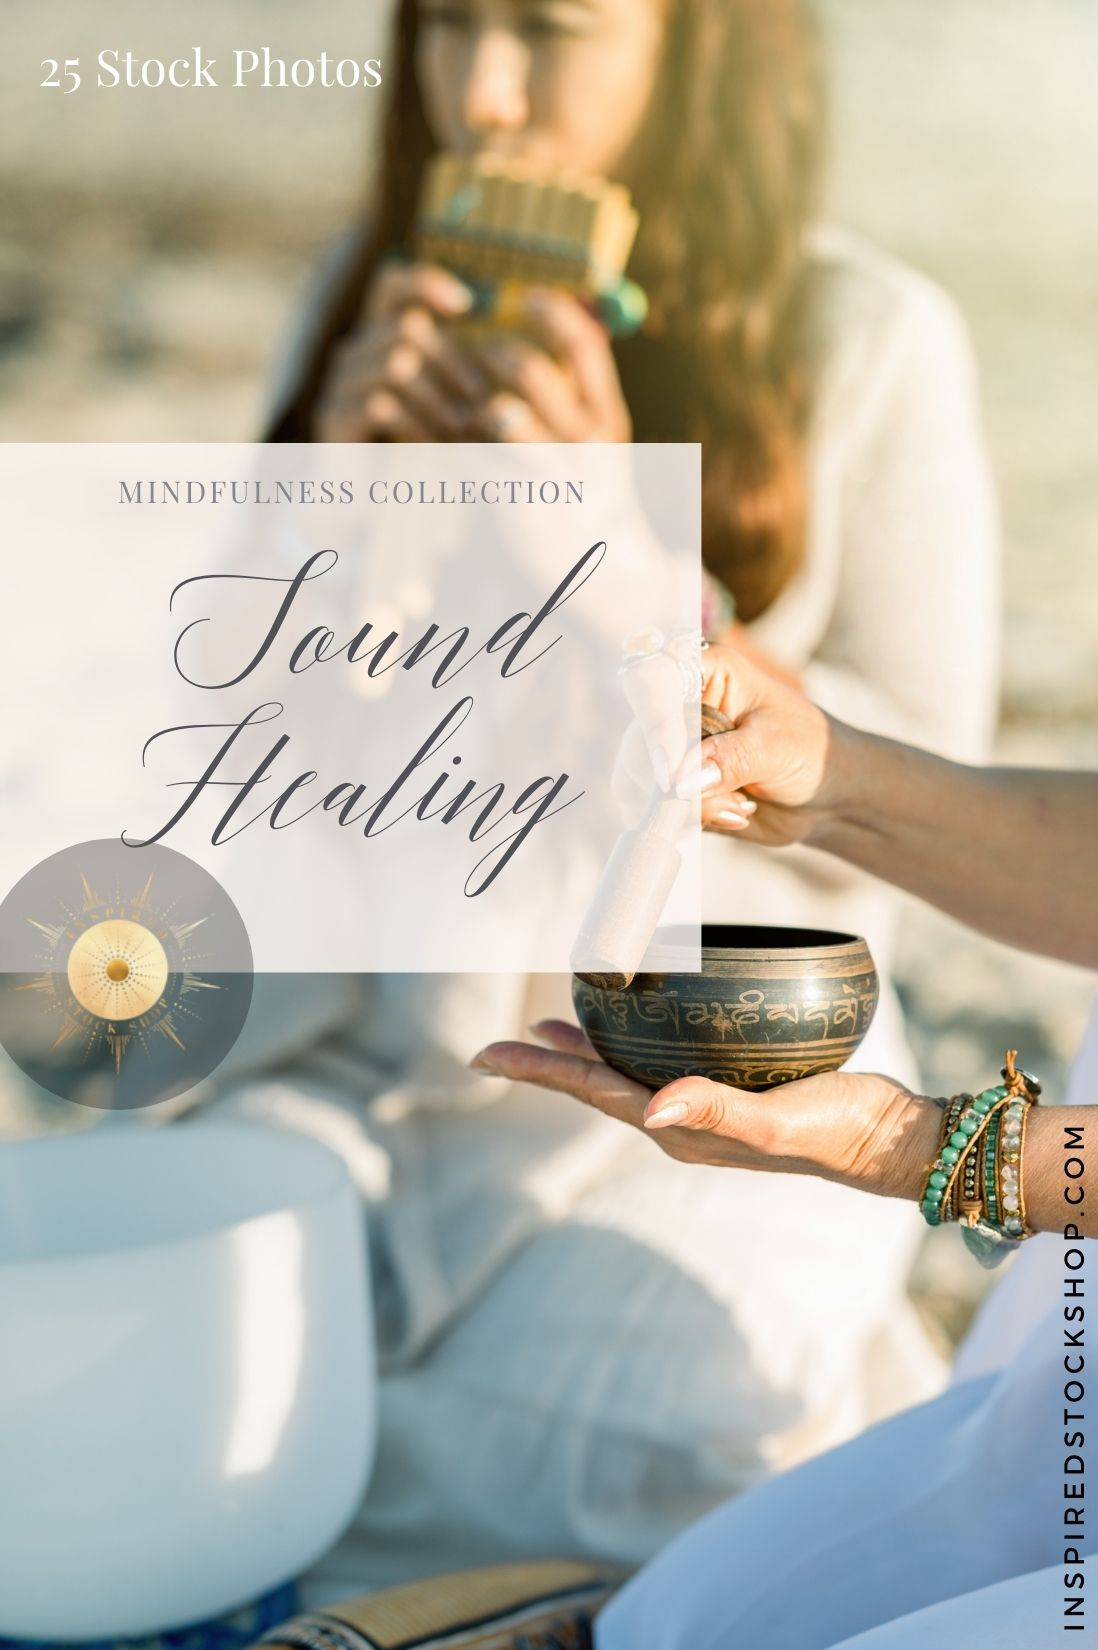 Sound and energy healing stock photo bundle for spiritual entrepreneurs